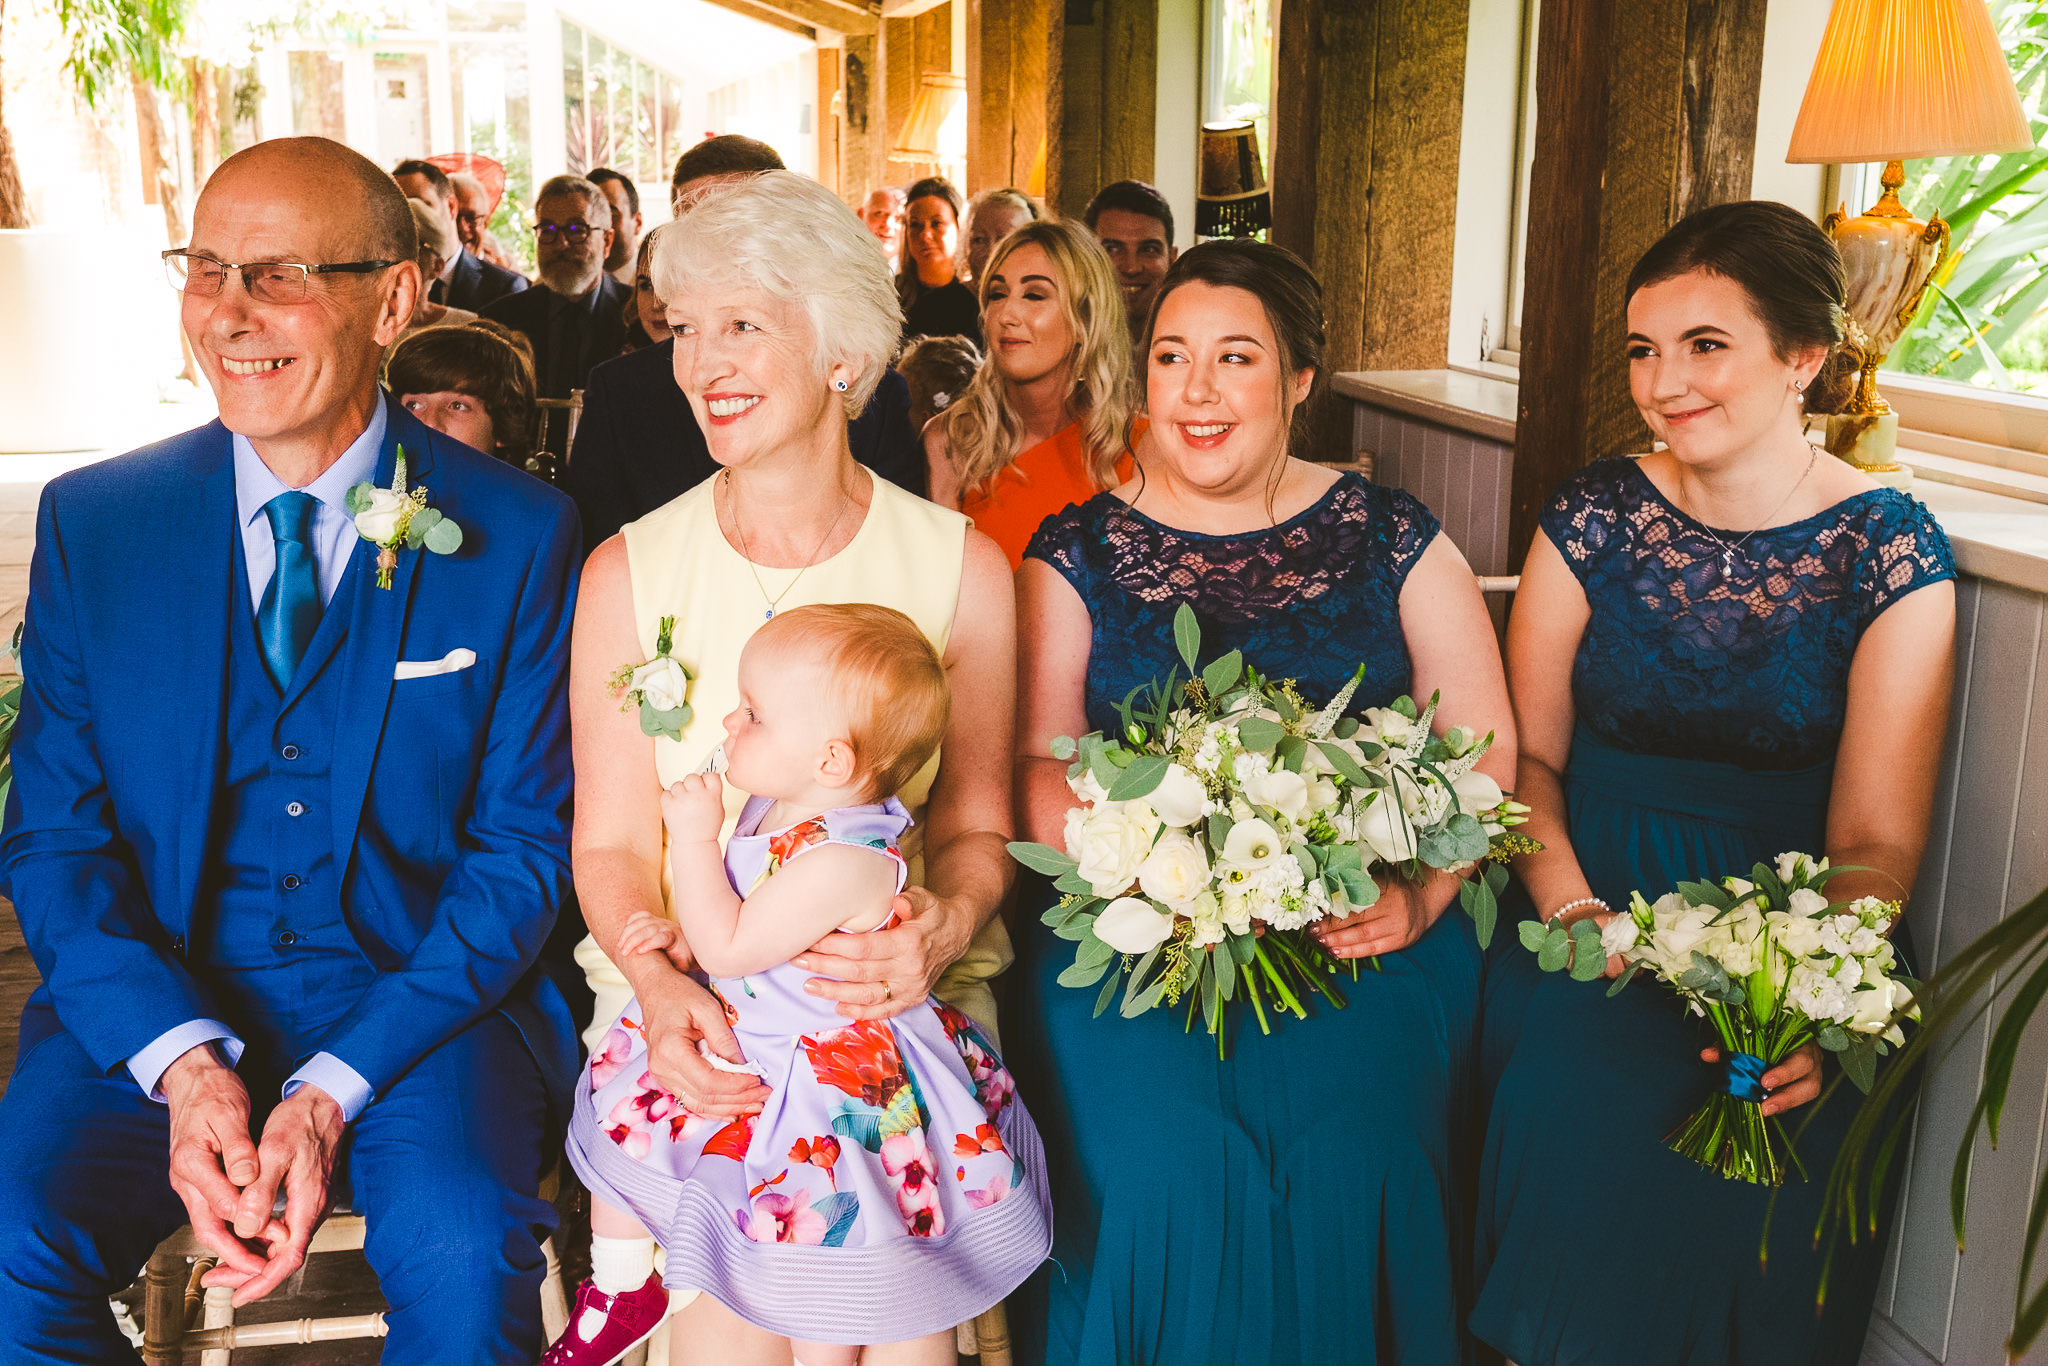 The bridesmaids and the bride's family look on during the wedding